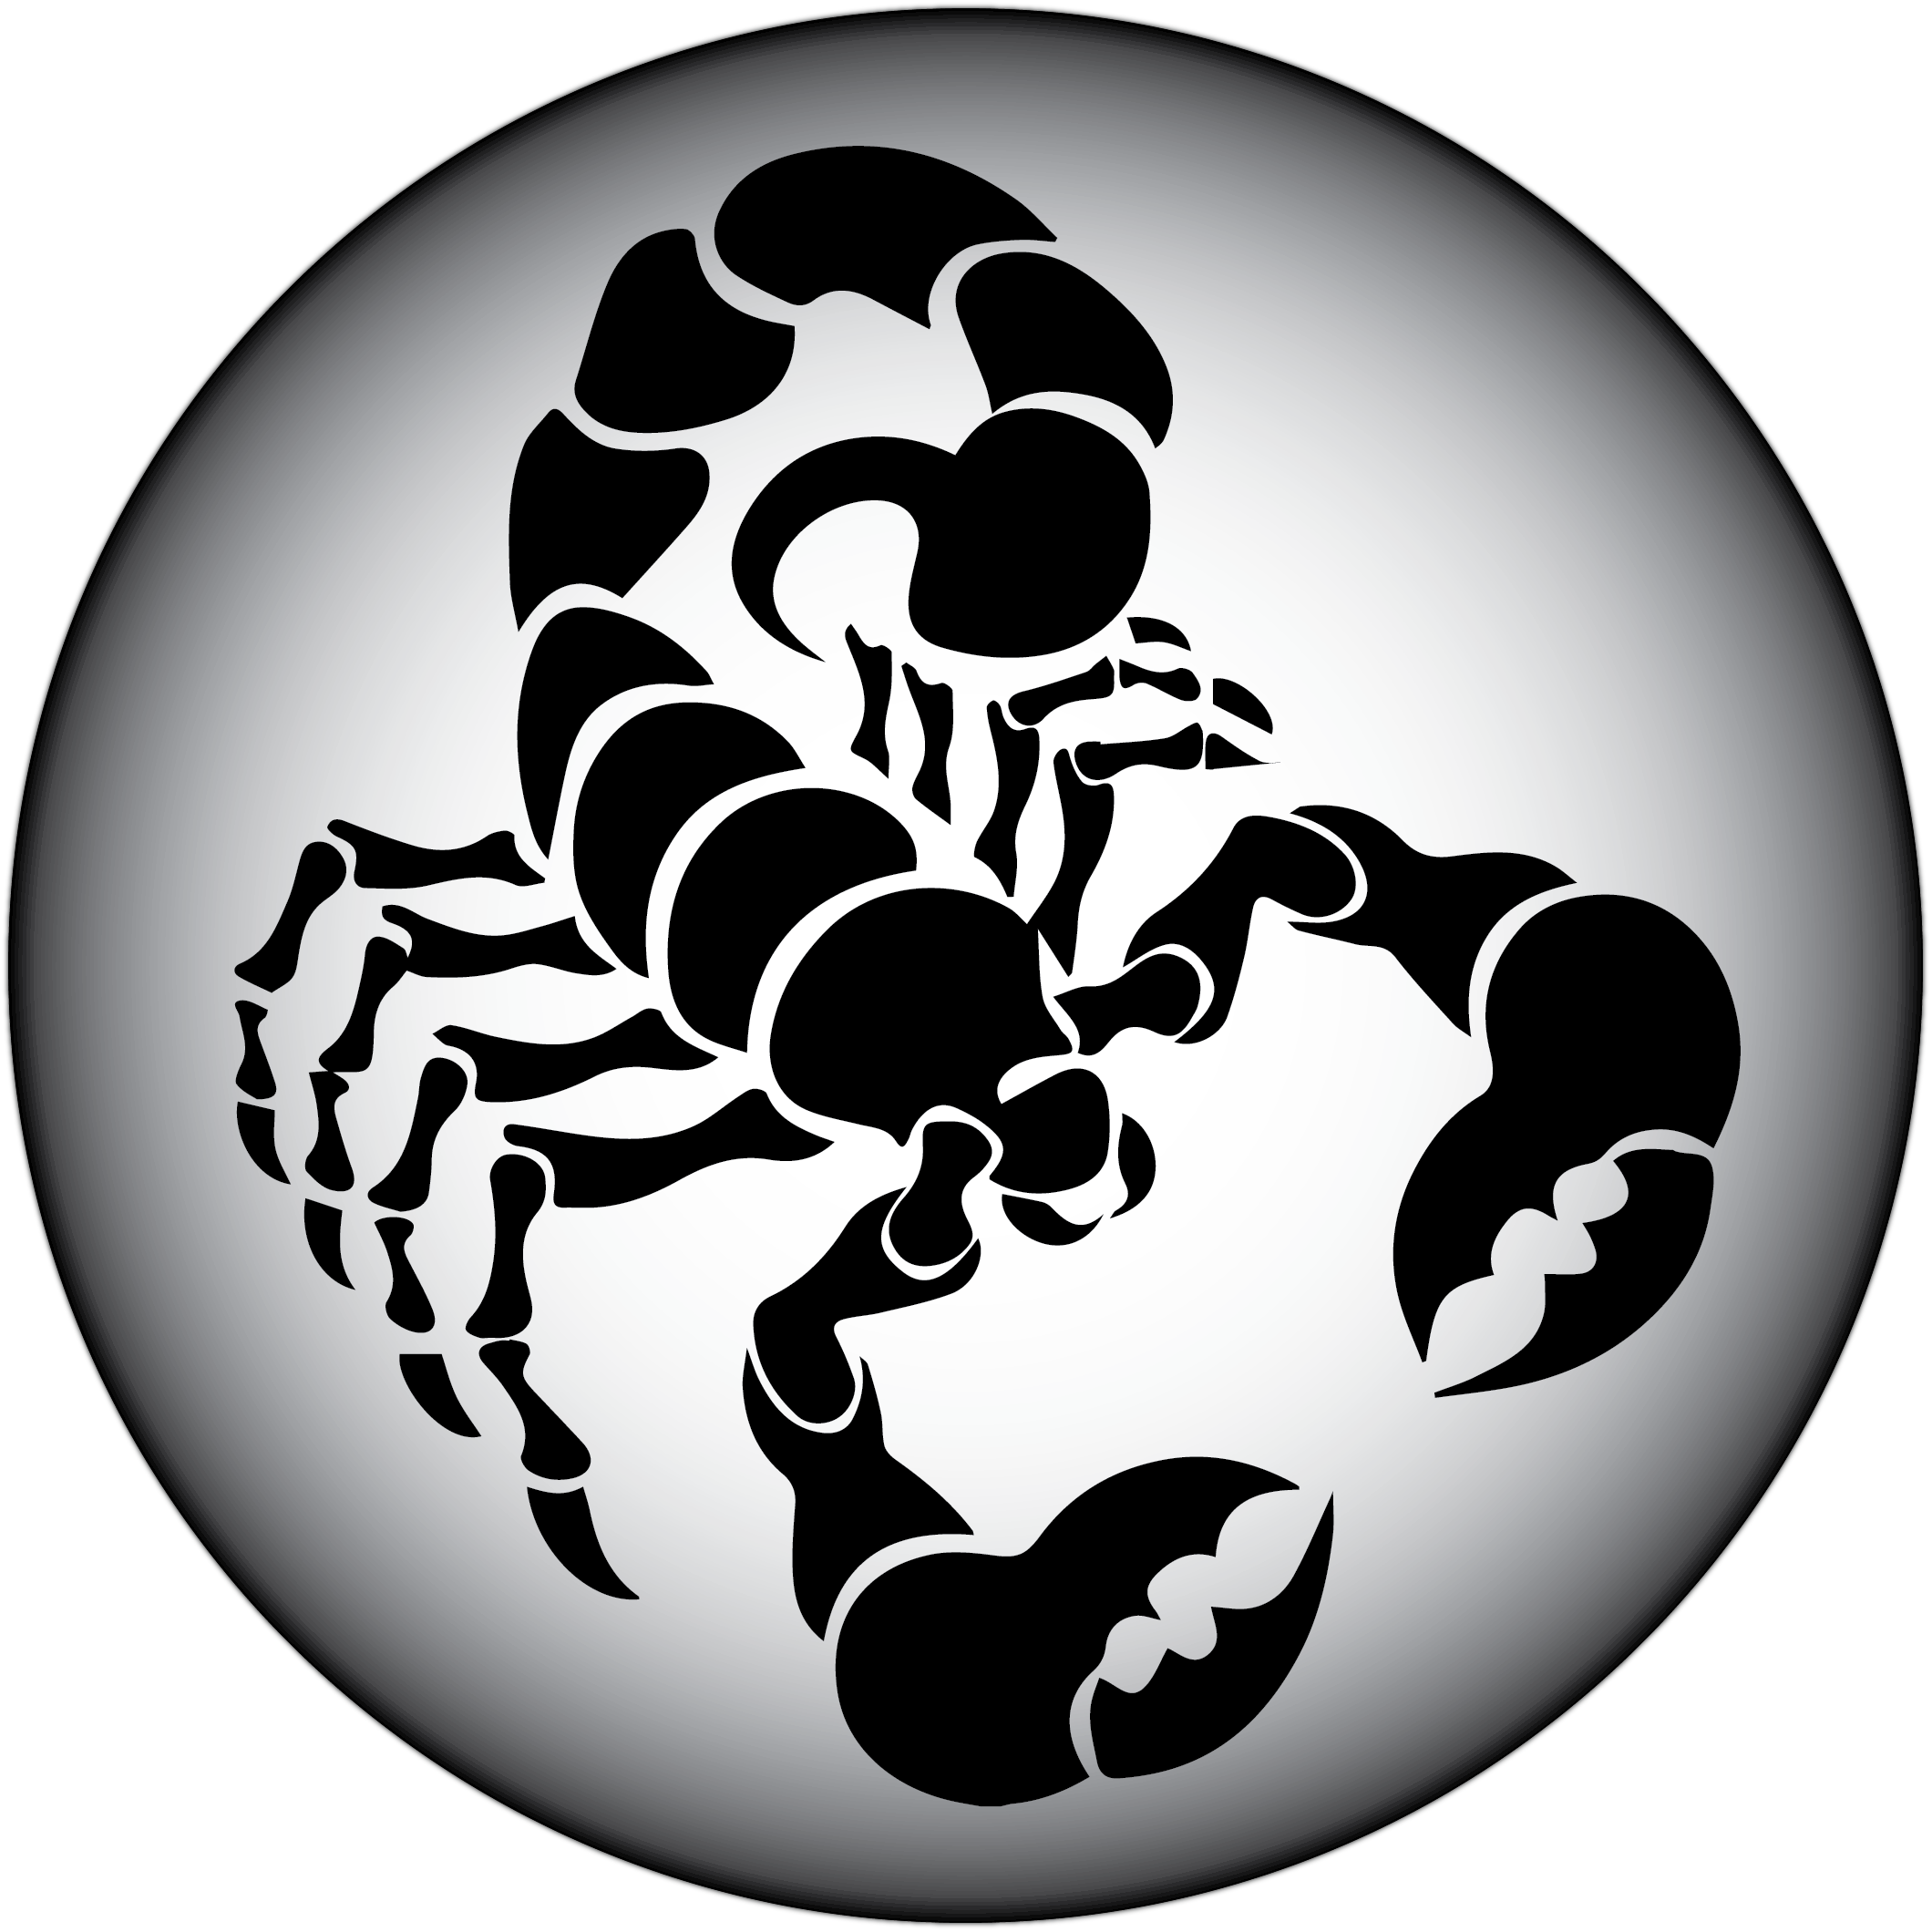 Scorpion clipart scorpio sign. Free png transparent images